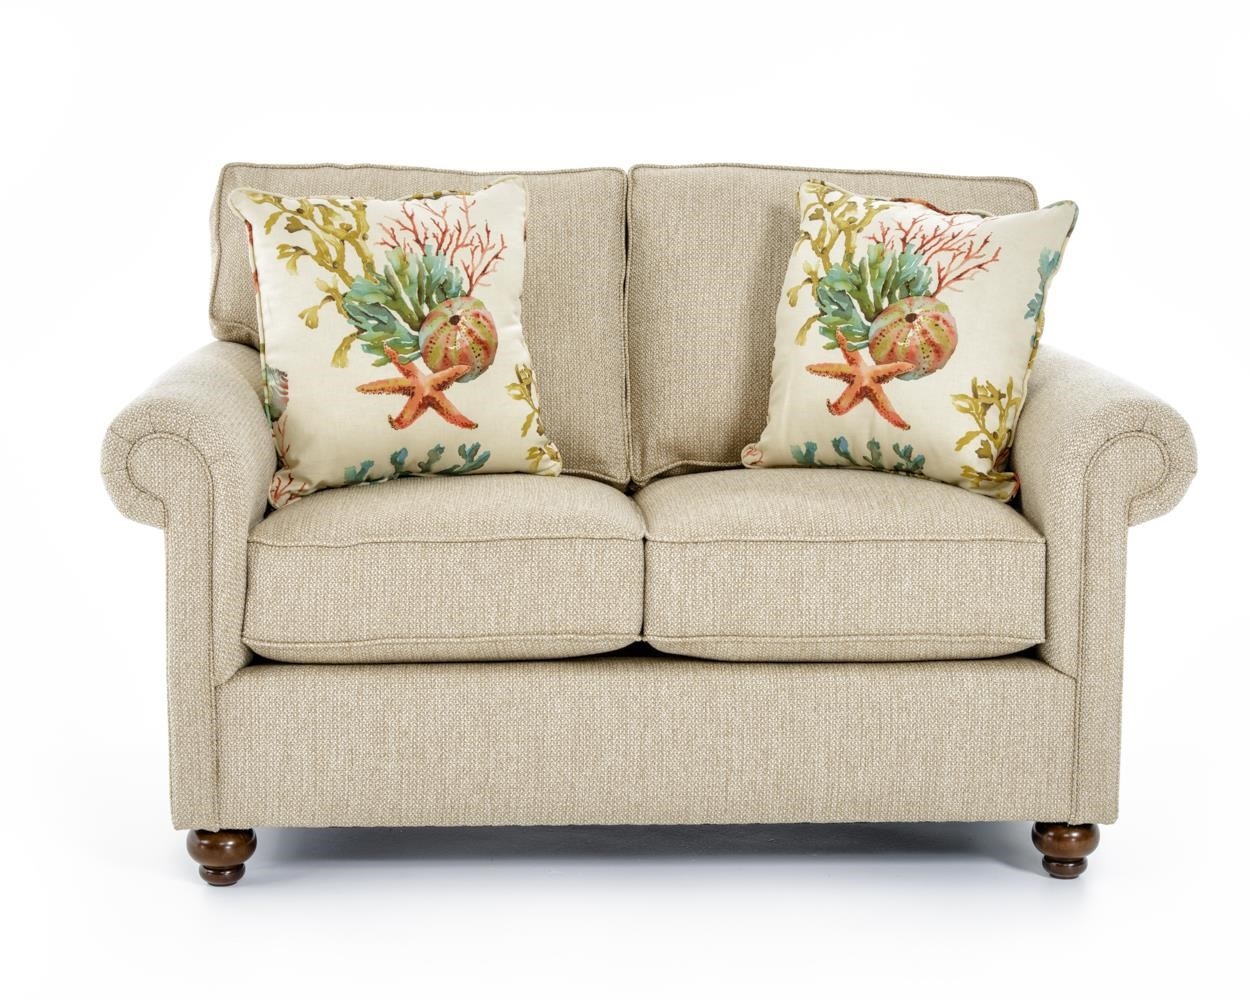 Broyhill Furniture Judd Loveseat - Item Number: 4262-1